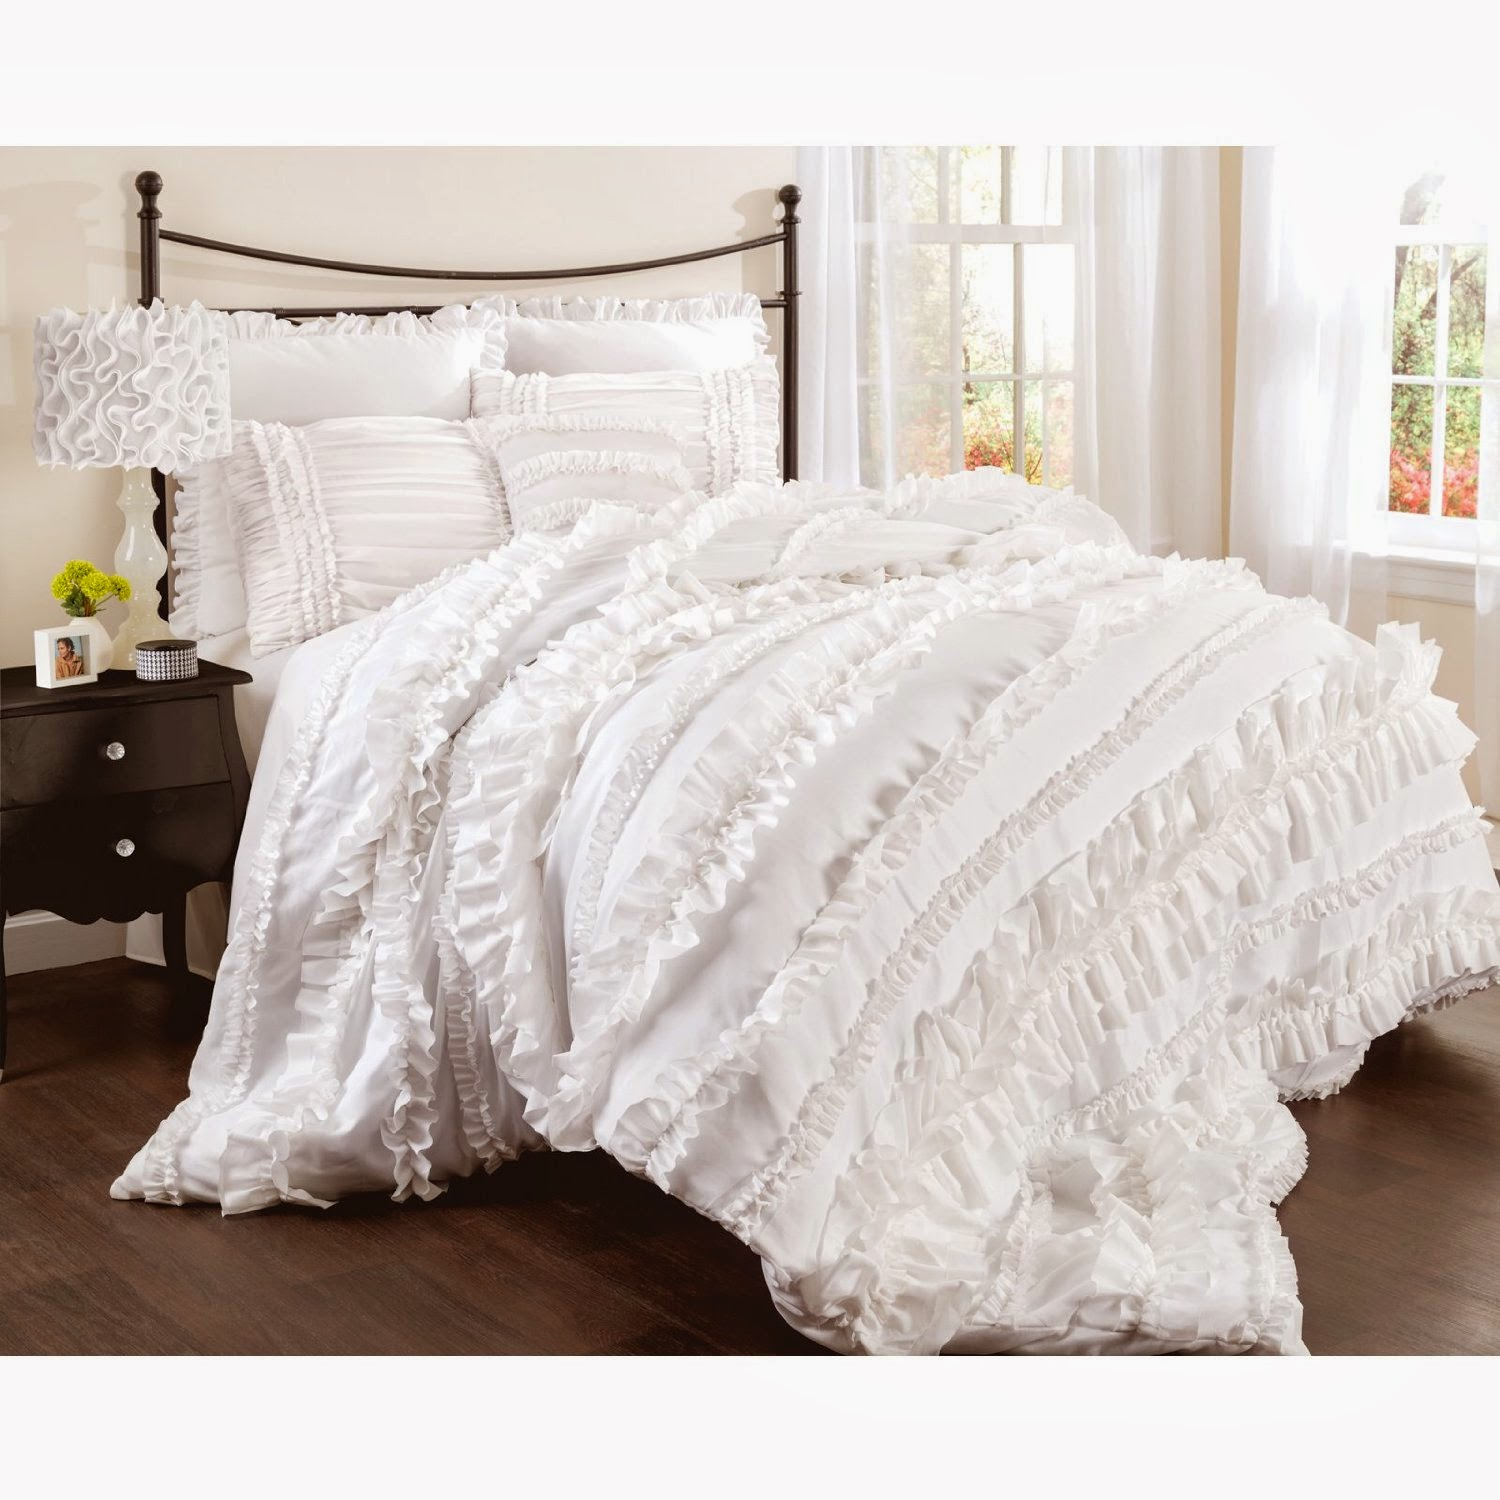 Bed Bath & Beyond Comforter Sets | White Duvet Cover Queen | Target Comforters King Size